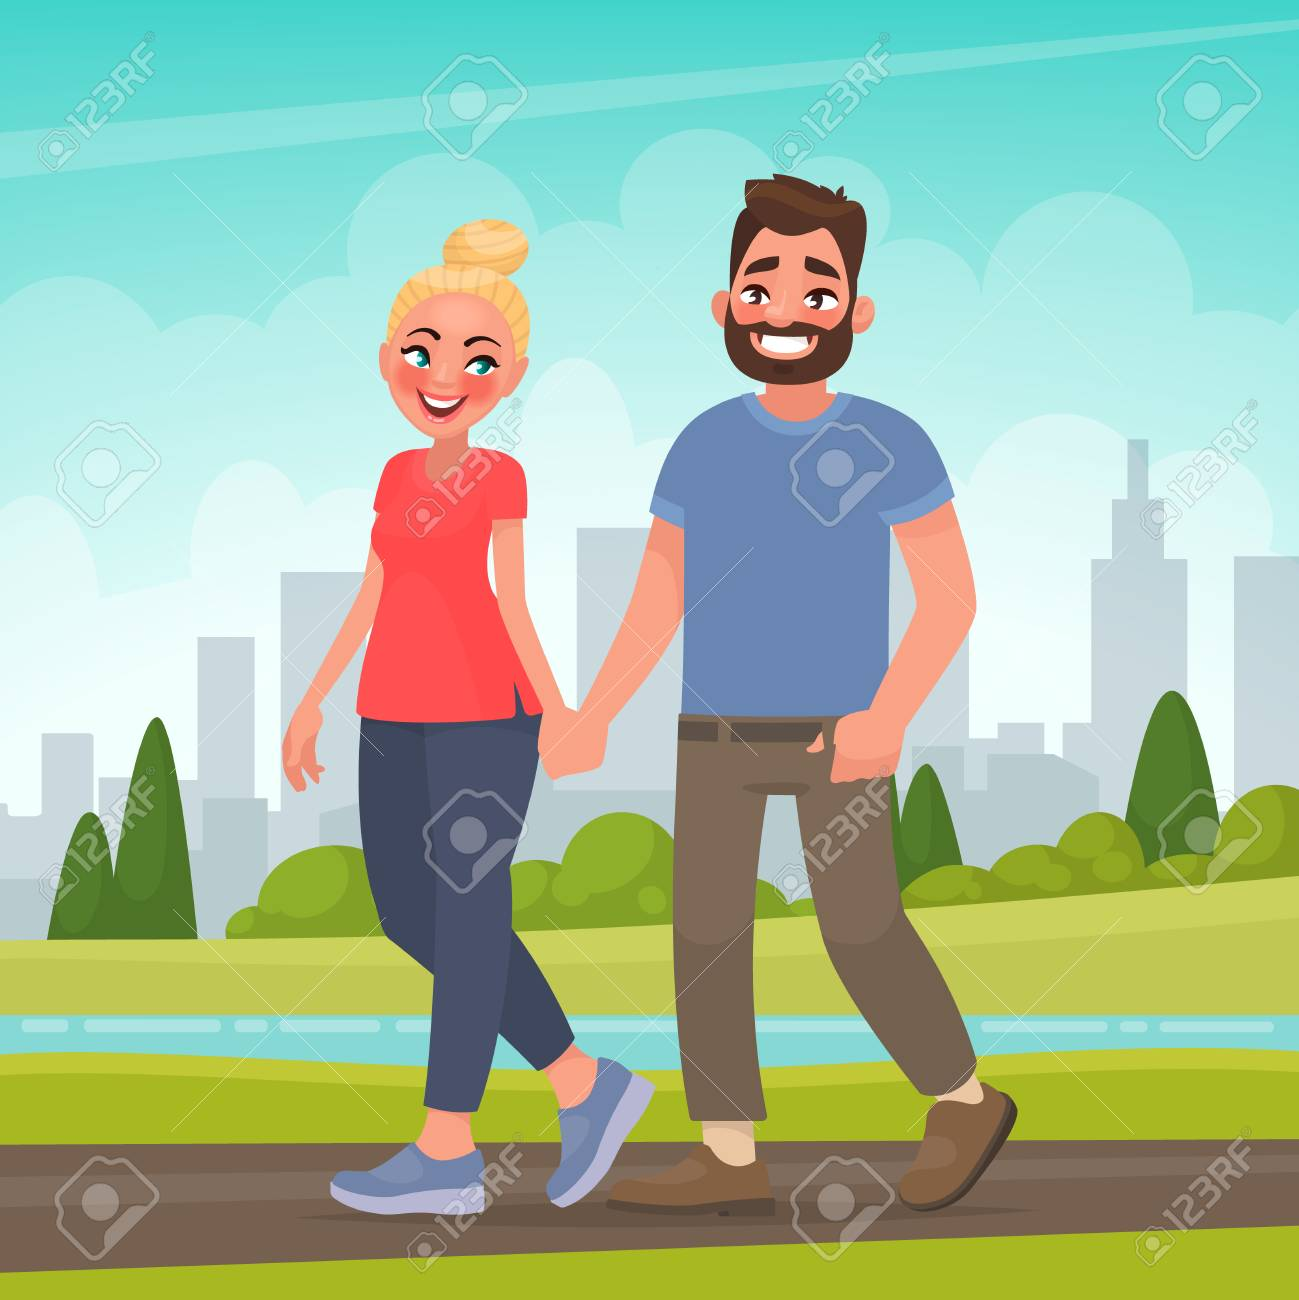 Happy couple in a city park man and woman holding hands walking outdoors vector